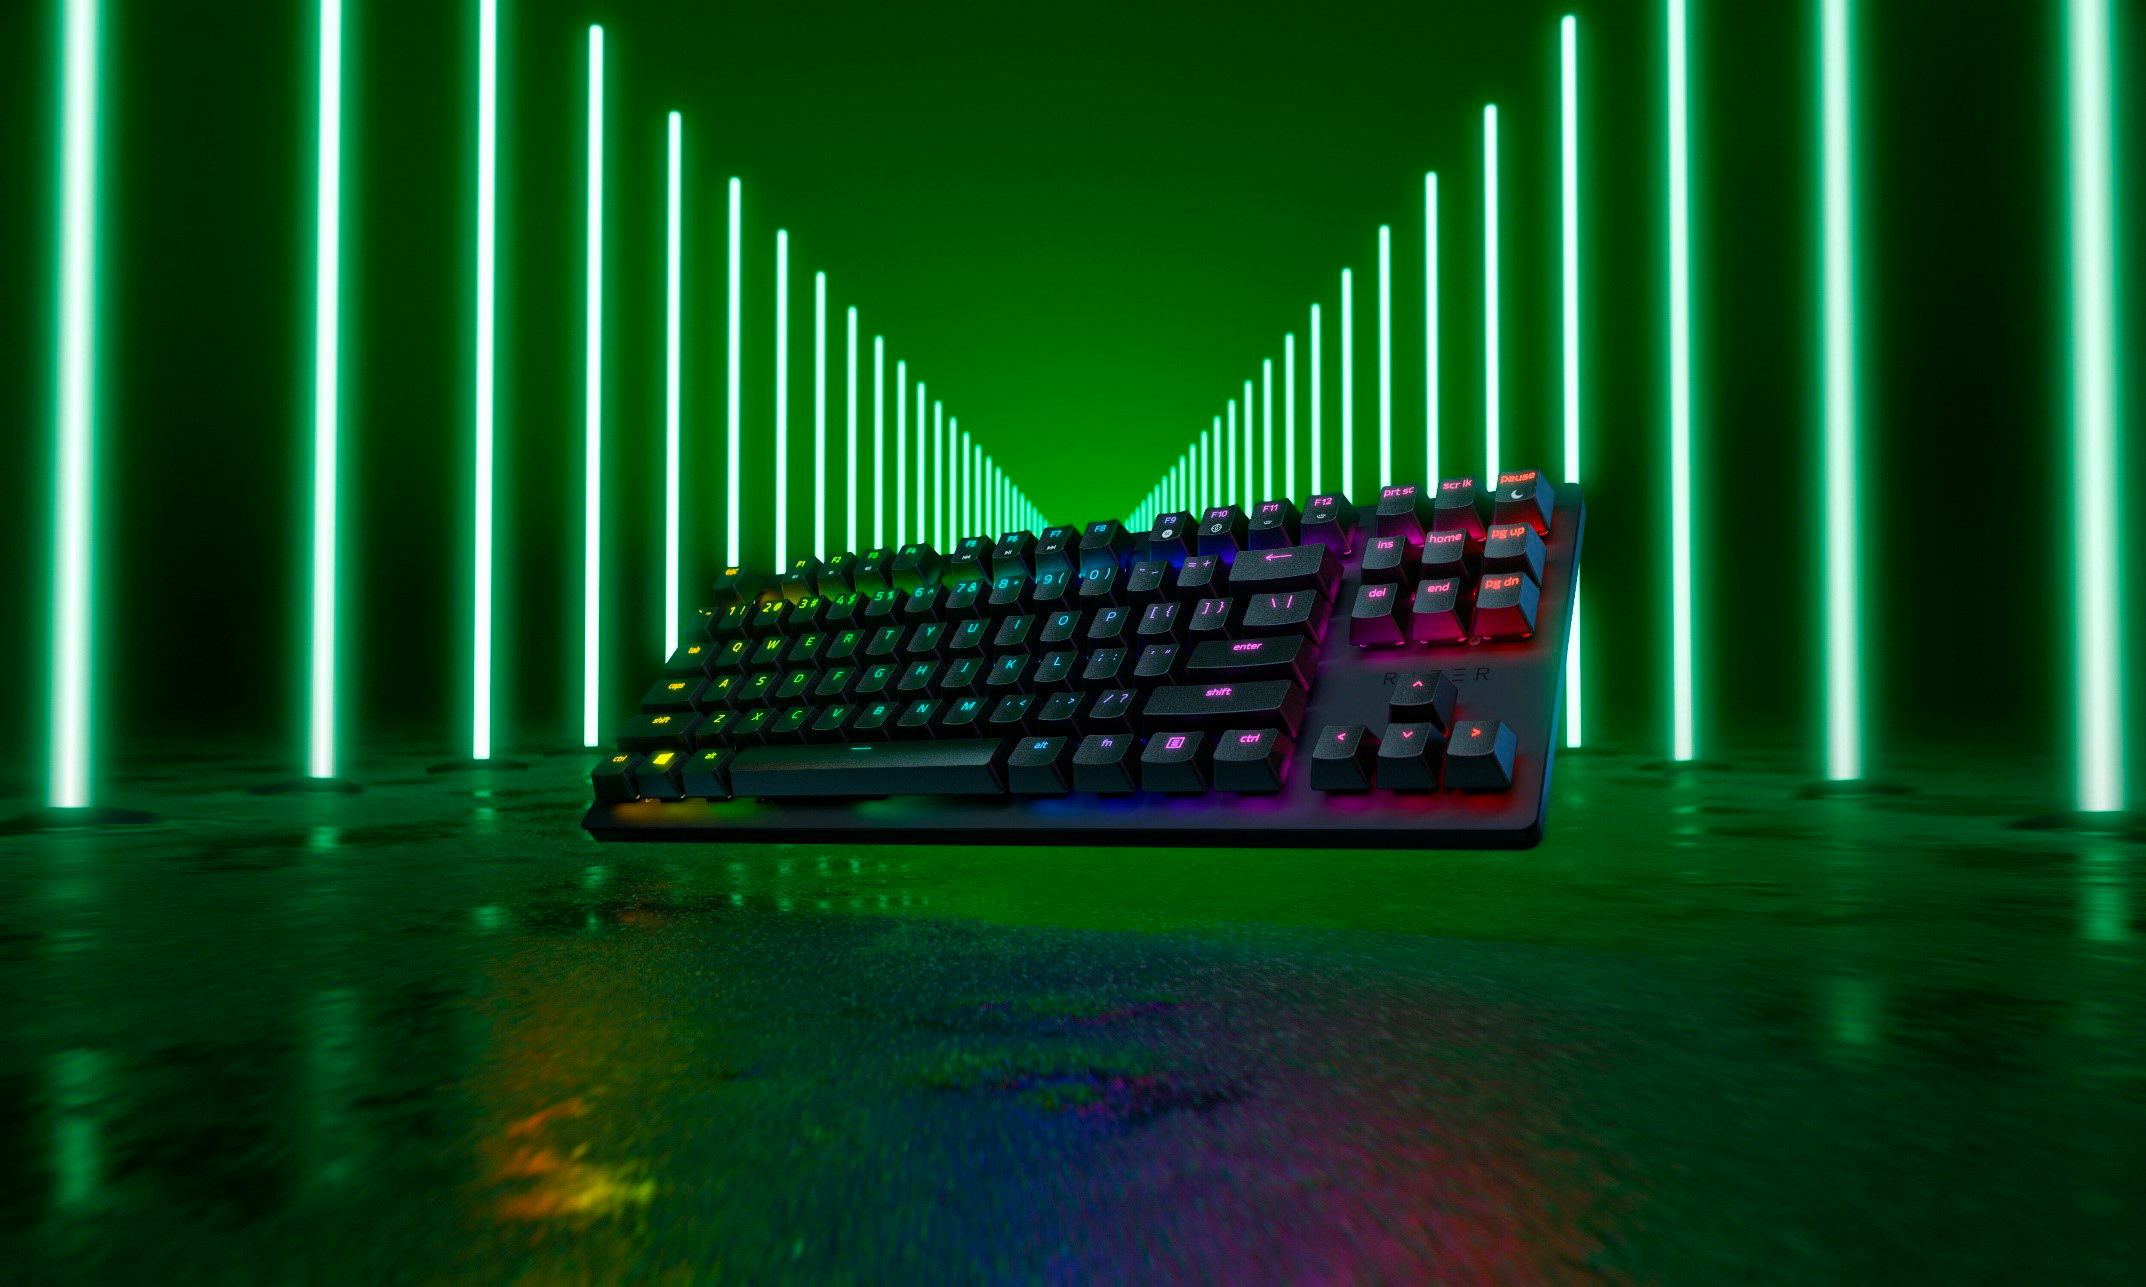 Compete at the Speed of Light With the Razer Huntsman